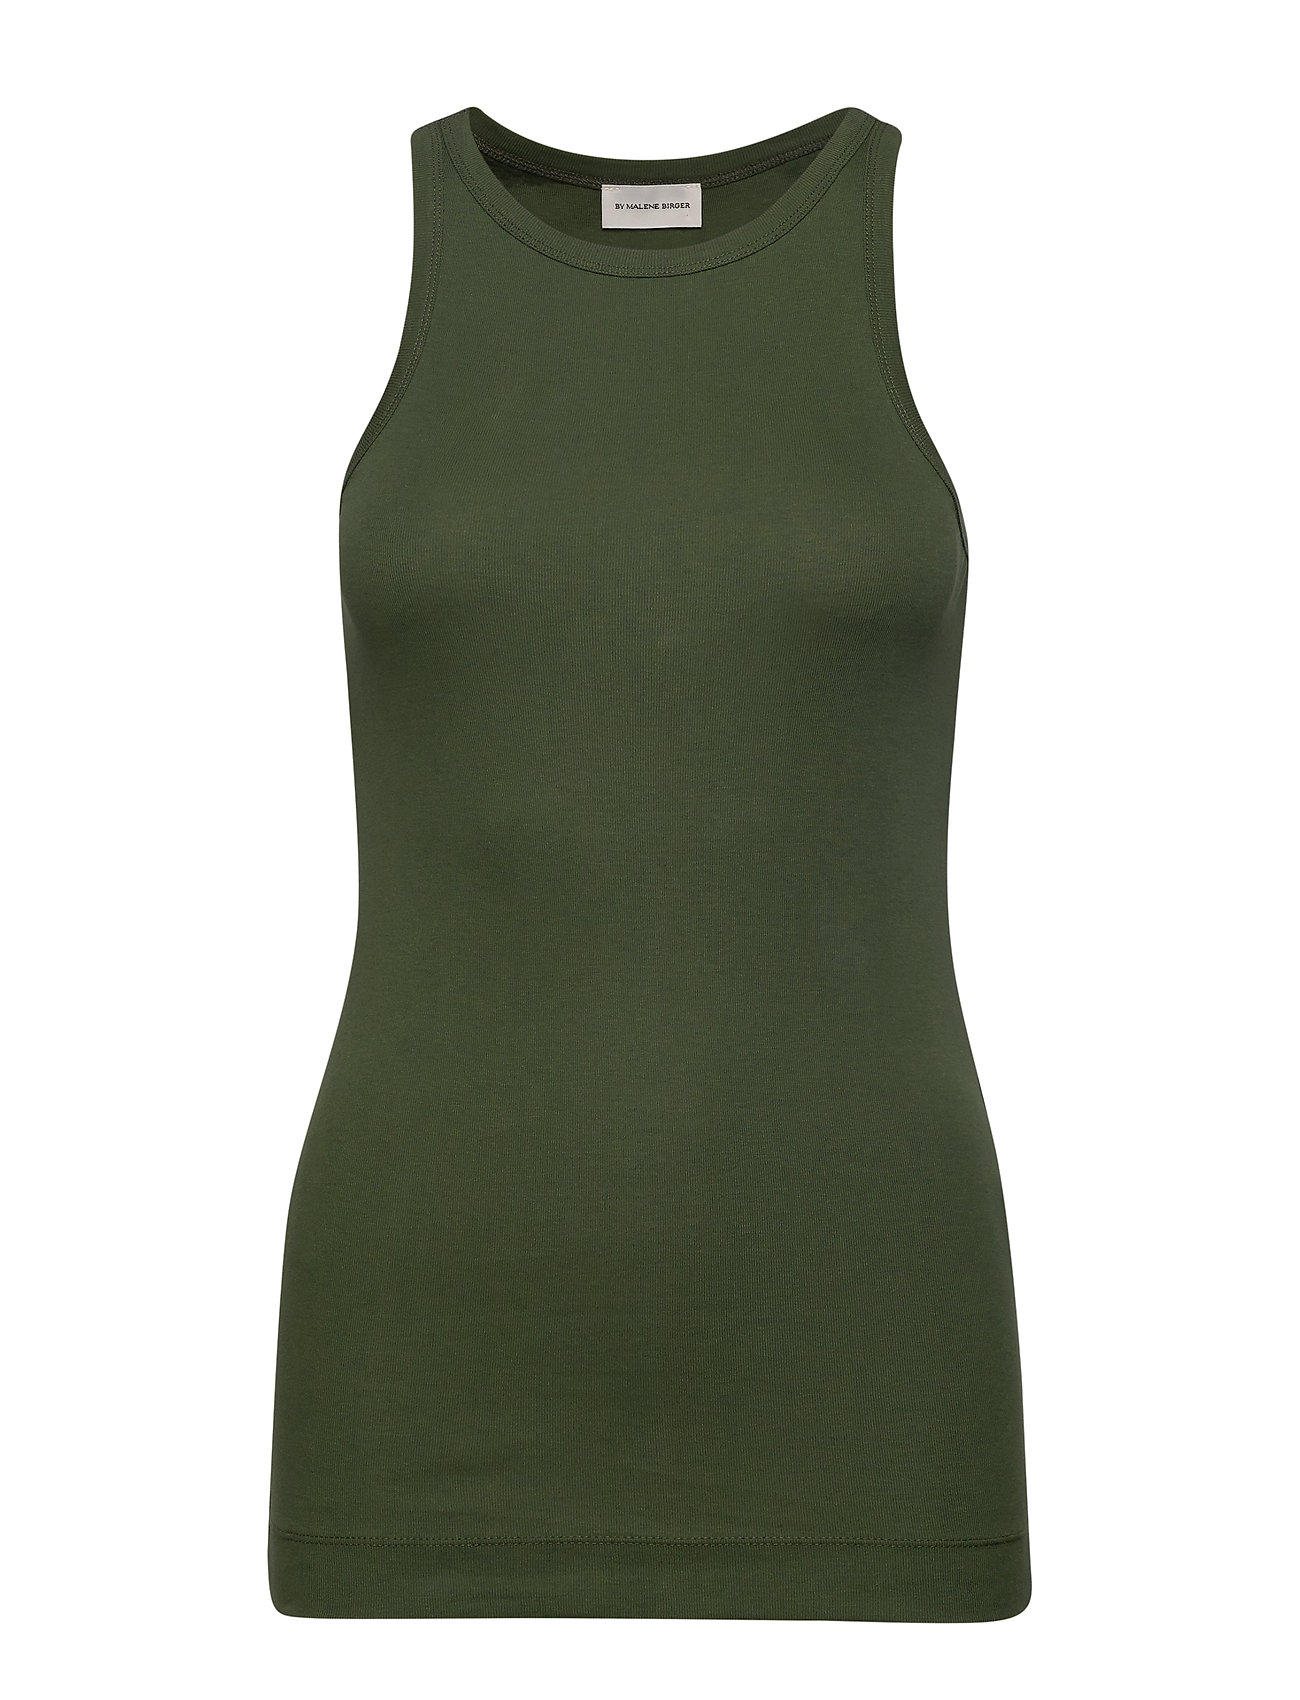 By Malene Birger AMIEE - TENT GREEN